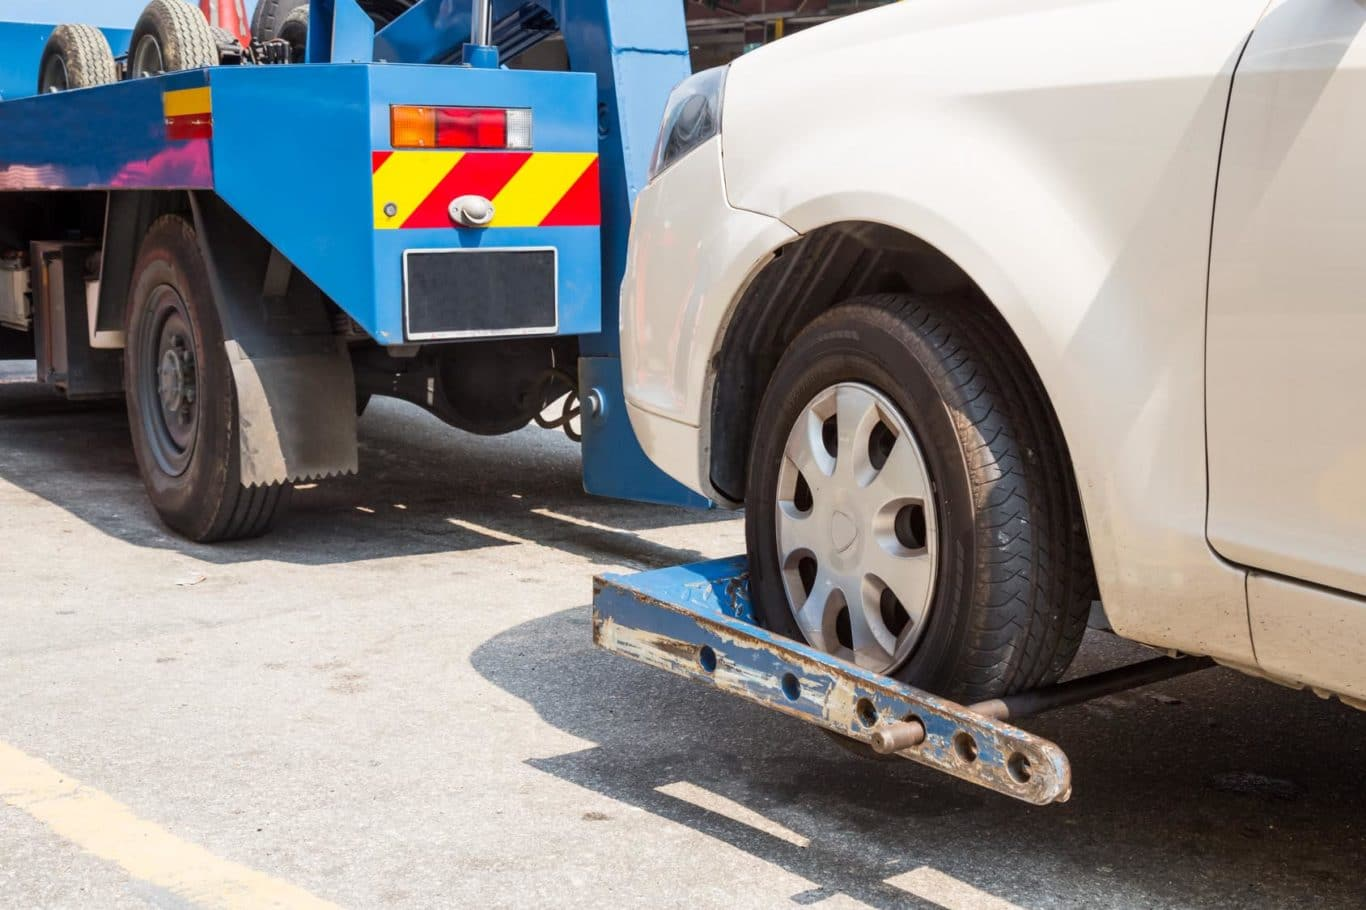 Tallanstown expert Car Towing services